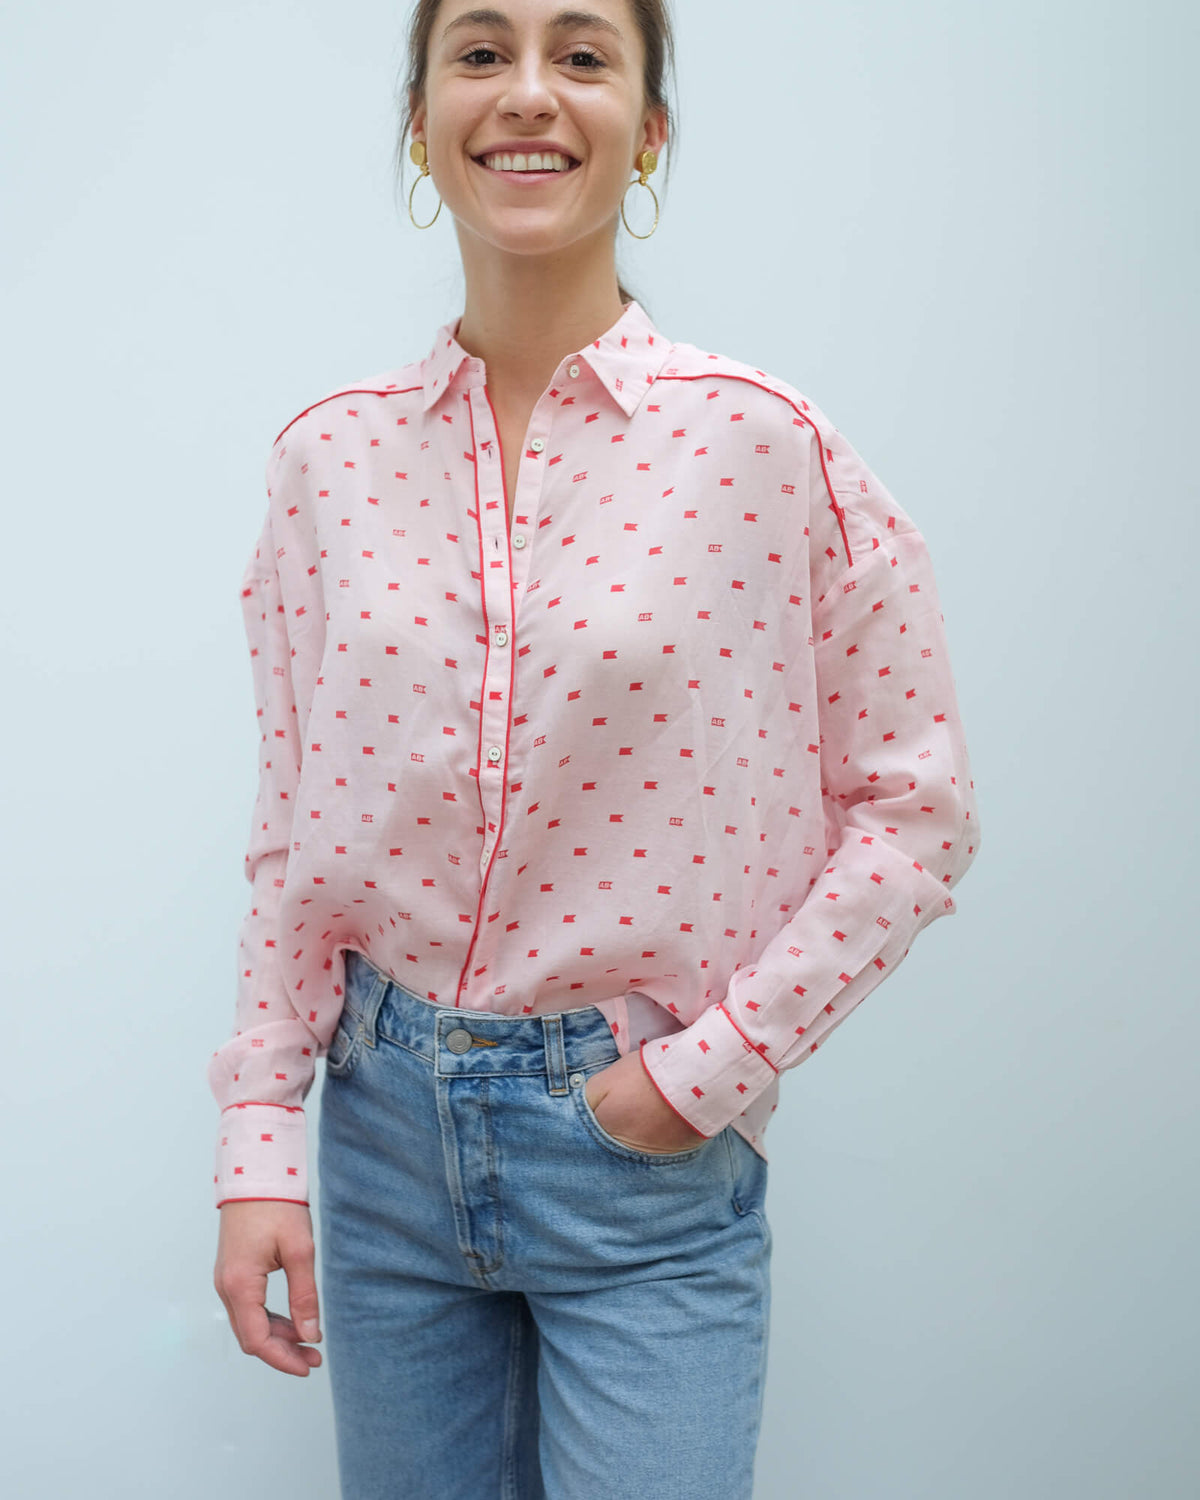 AB 150655 Boxy fit printed shirt in pink and red